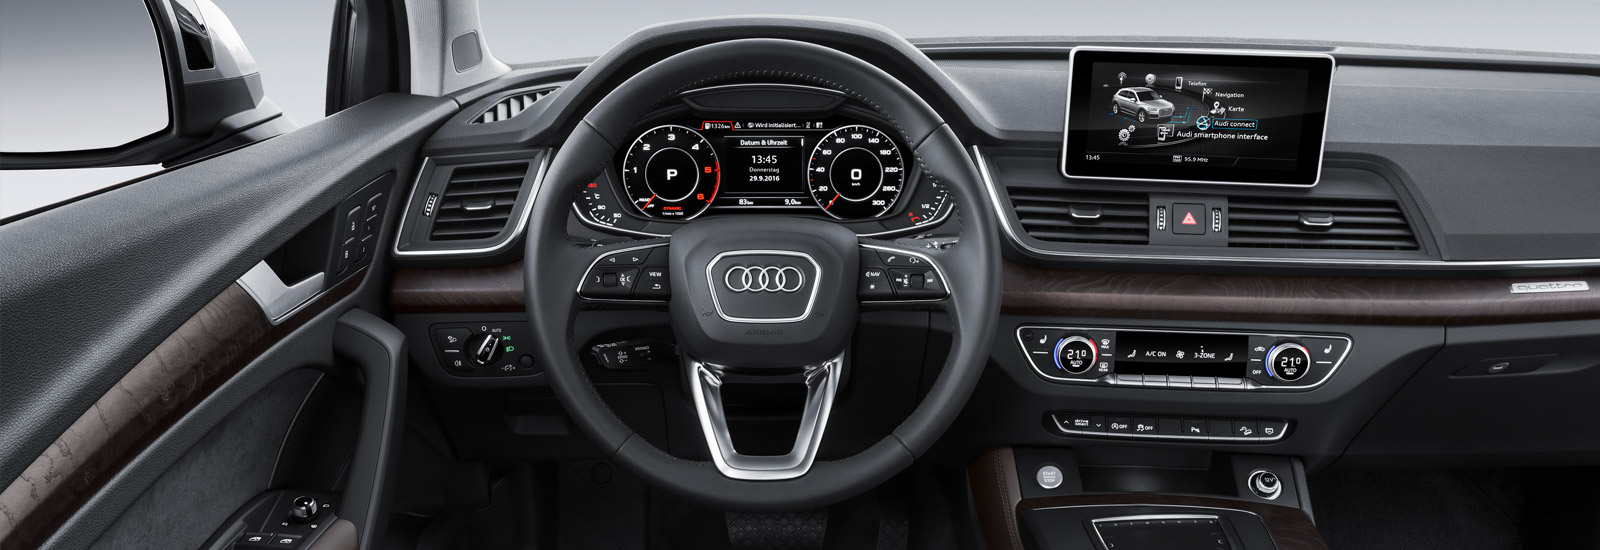 audi q 3 2018. fine 2018 elements from the q5u0027s dashboard shown here should find their way to  new q3 inside audi q 3 2018